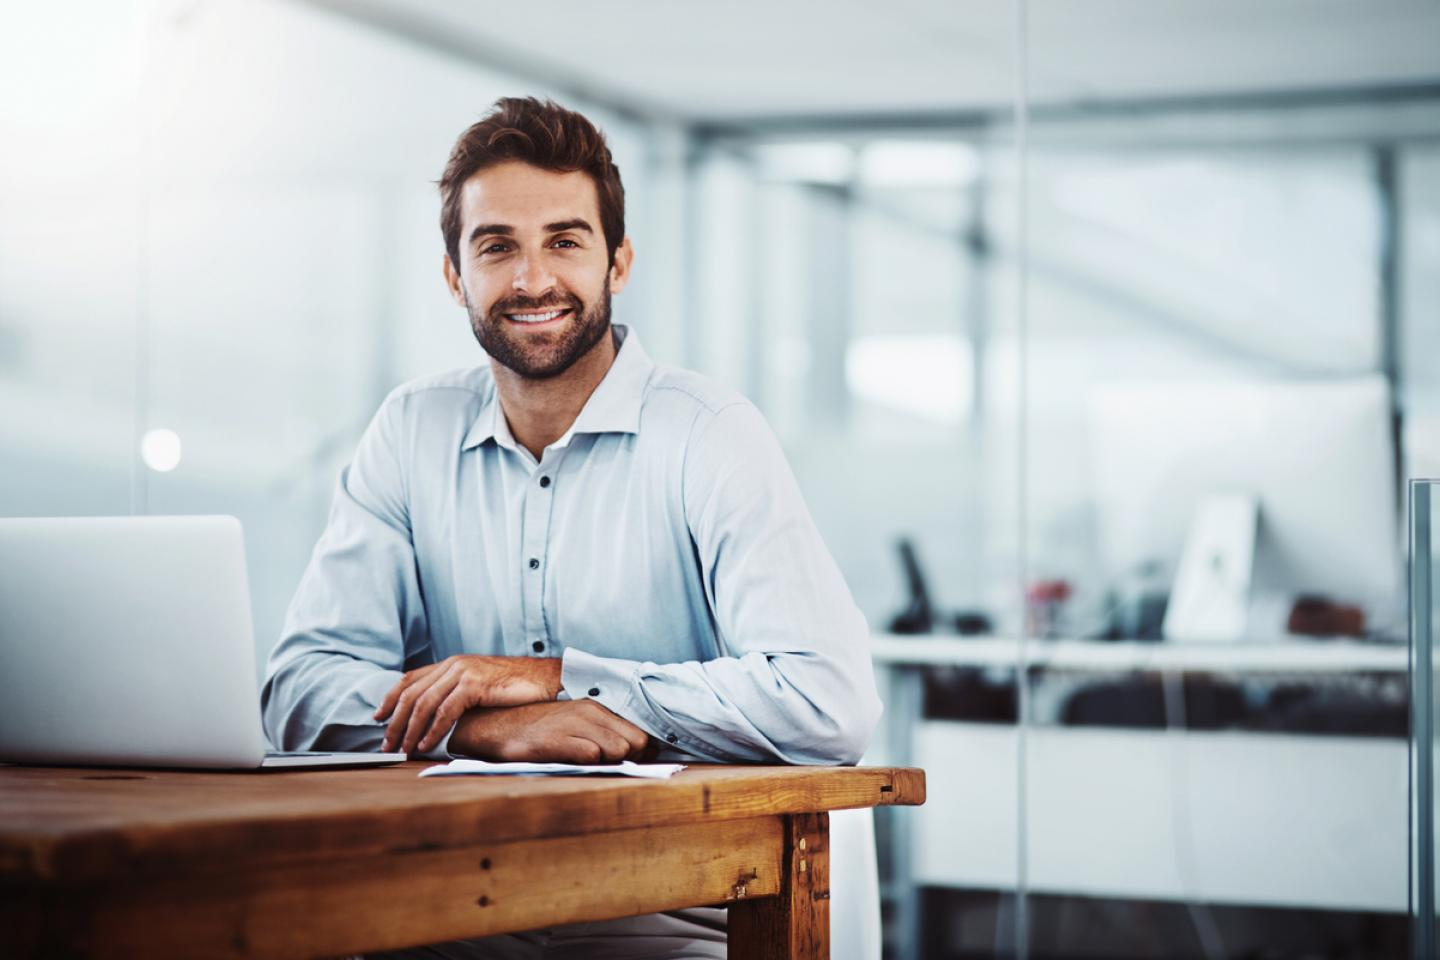 Man smiling at desk